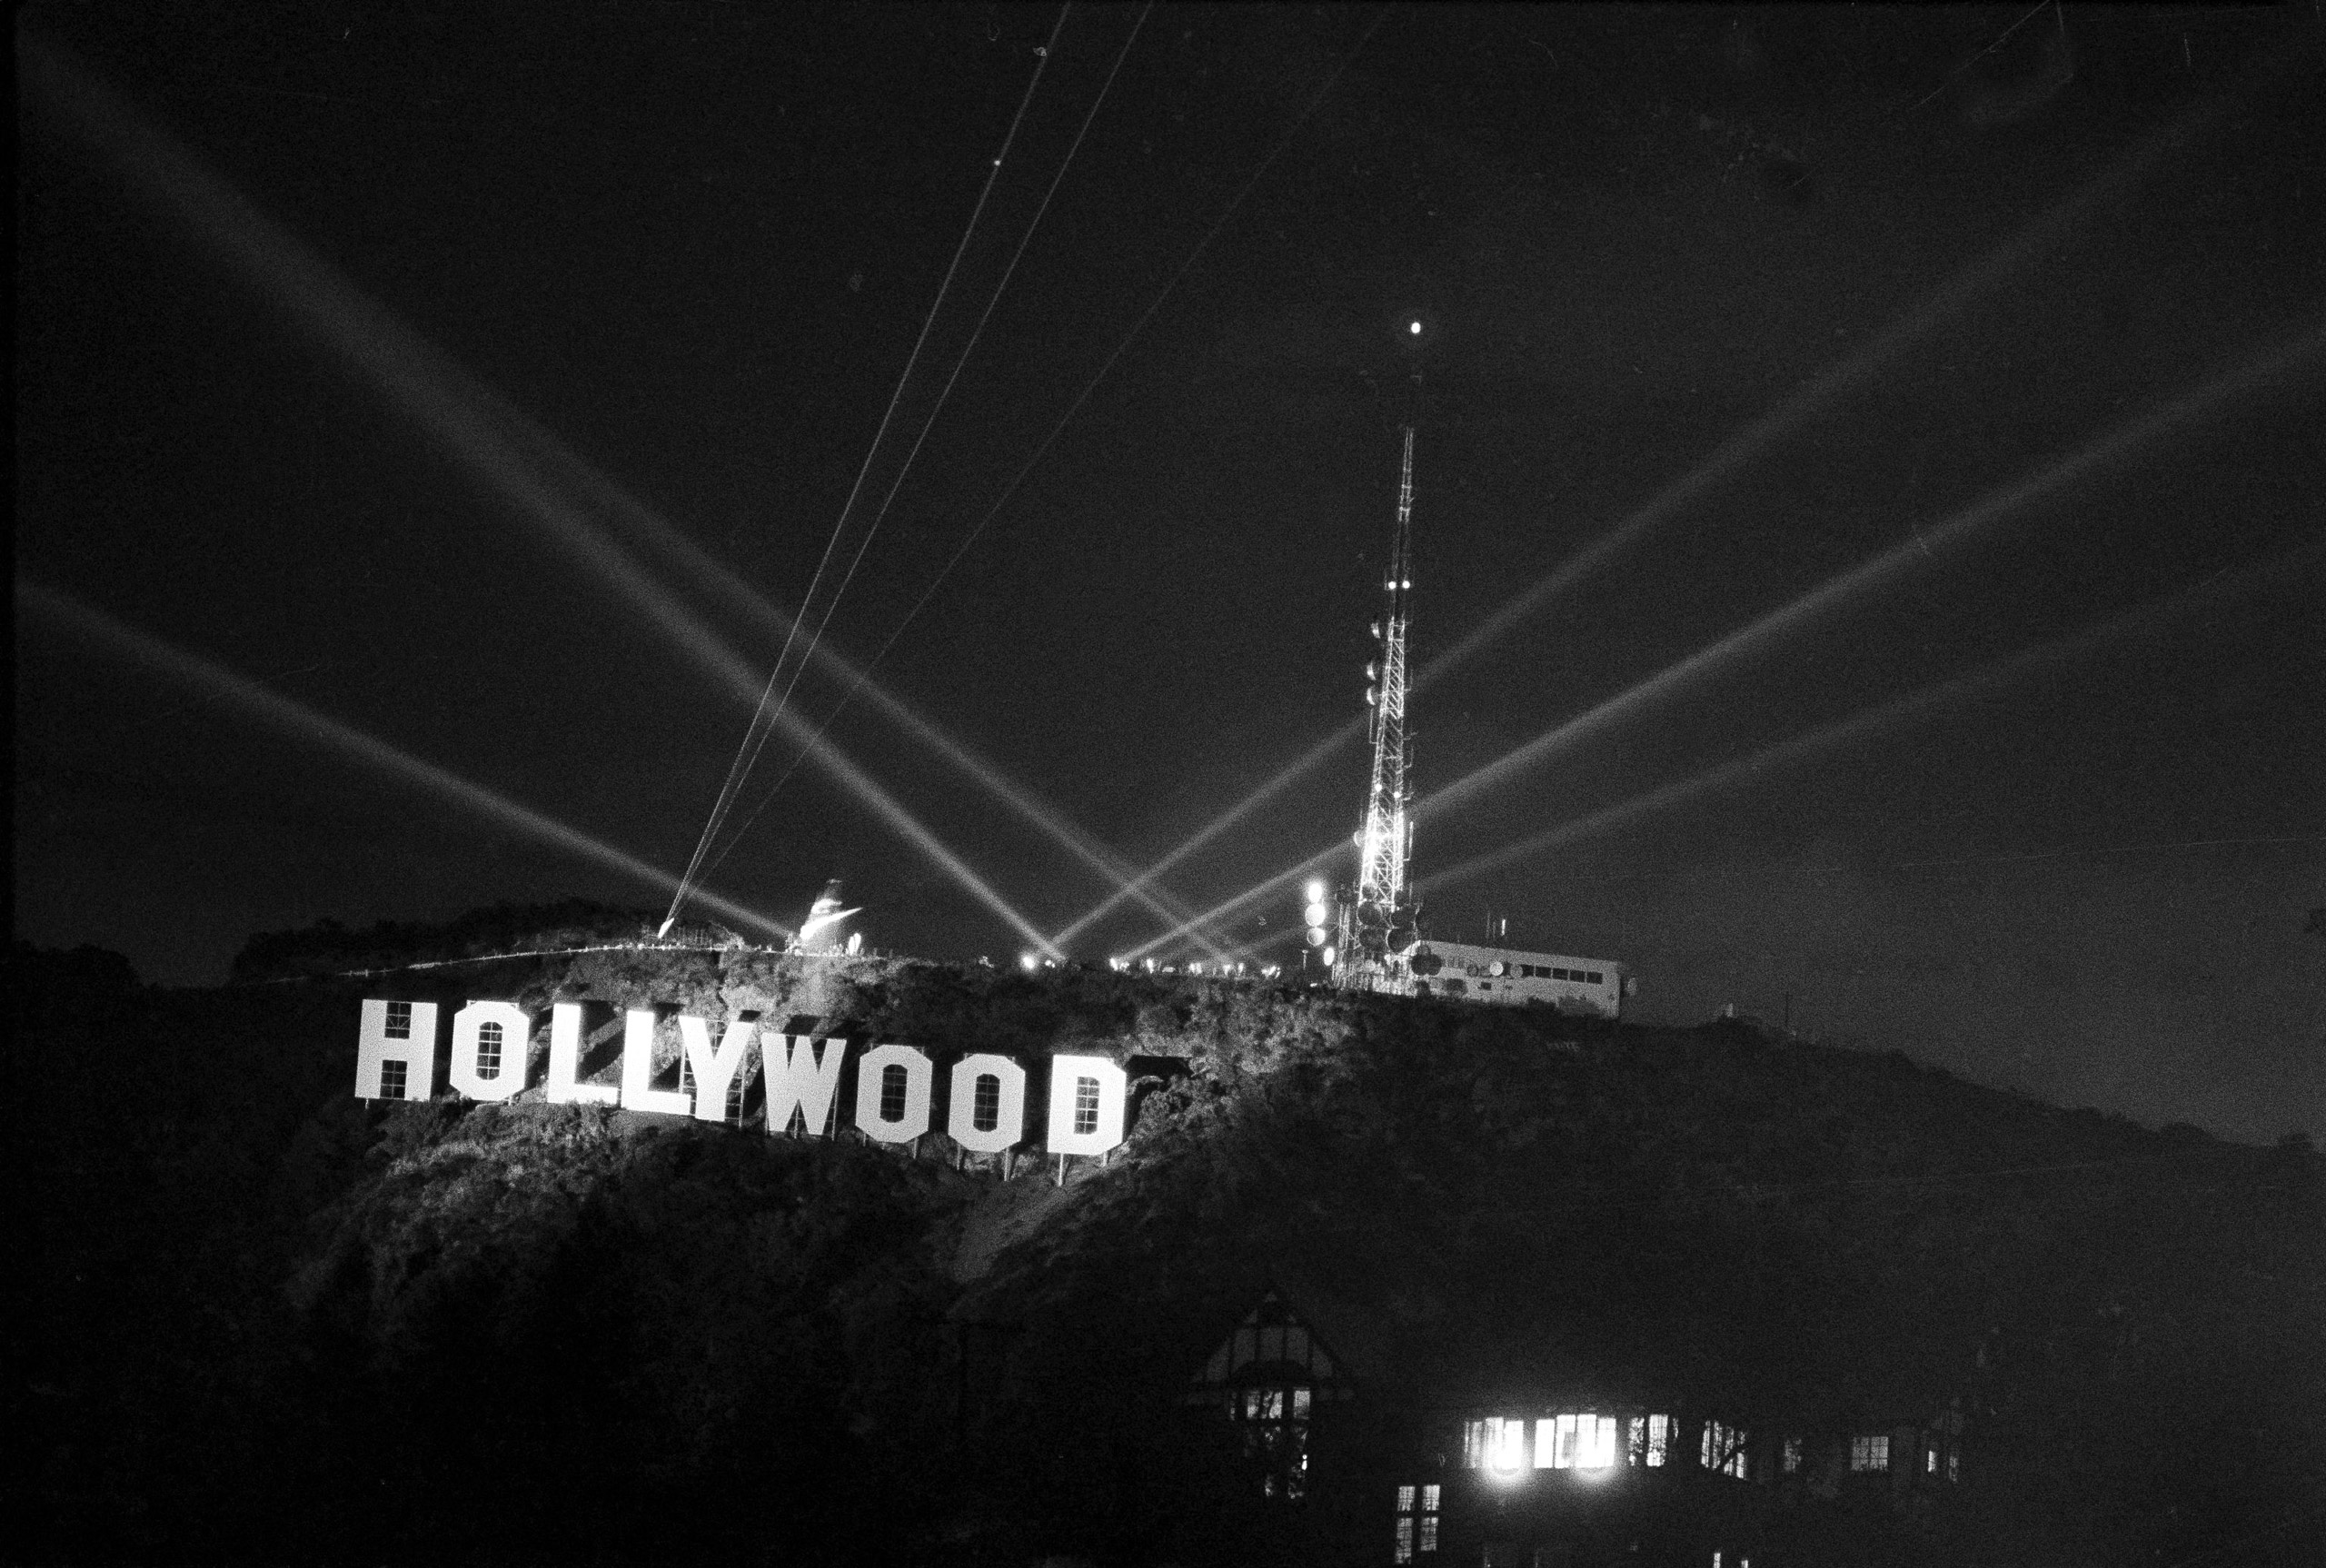 Amid laser beams and searchlights, the new  Hollywood  sign near the top of Mt. Lee in Los Angeles, is unveiled after its dedication, Nov. 11, 1978. The old landmark sign it replaces was built in 1923, but deteriorated and began to fall apart recently. The 50-foot high and 400-foot long sign was replaced by donations from nine public donors totaling $250,000.